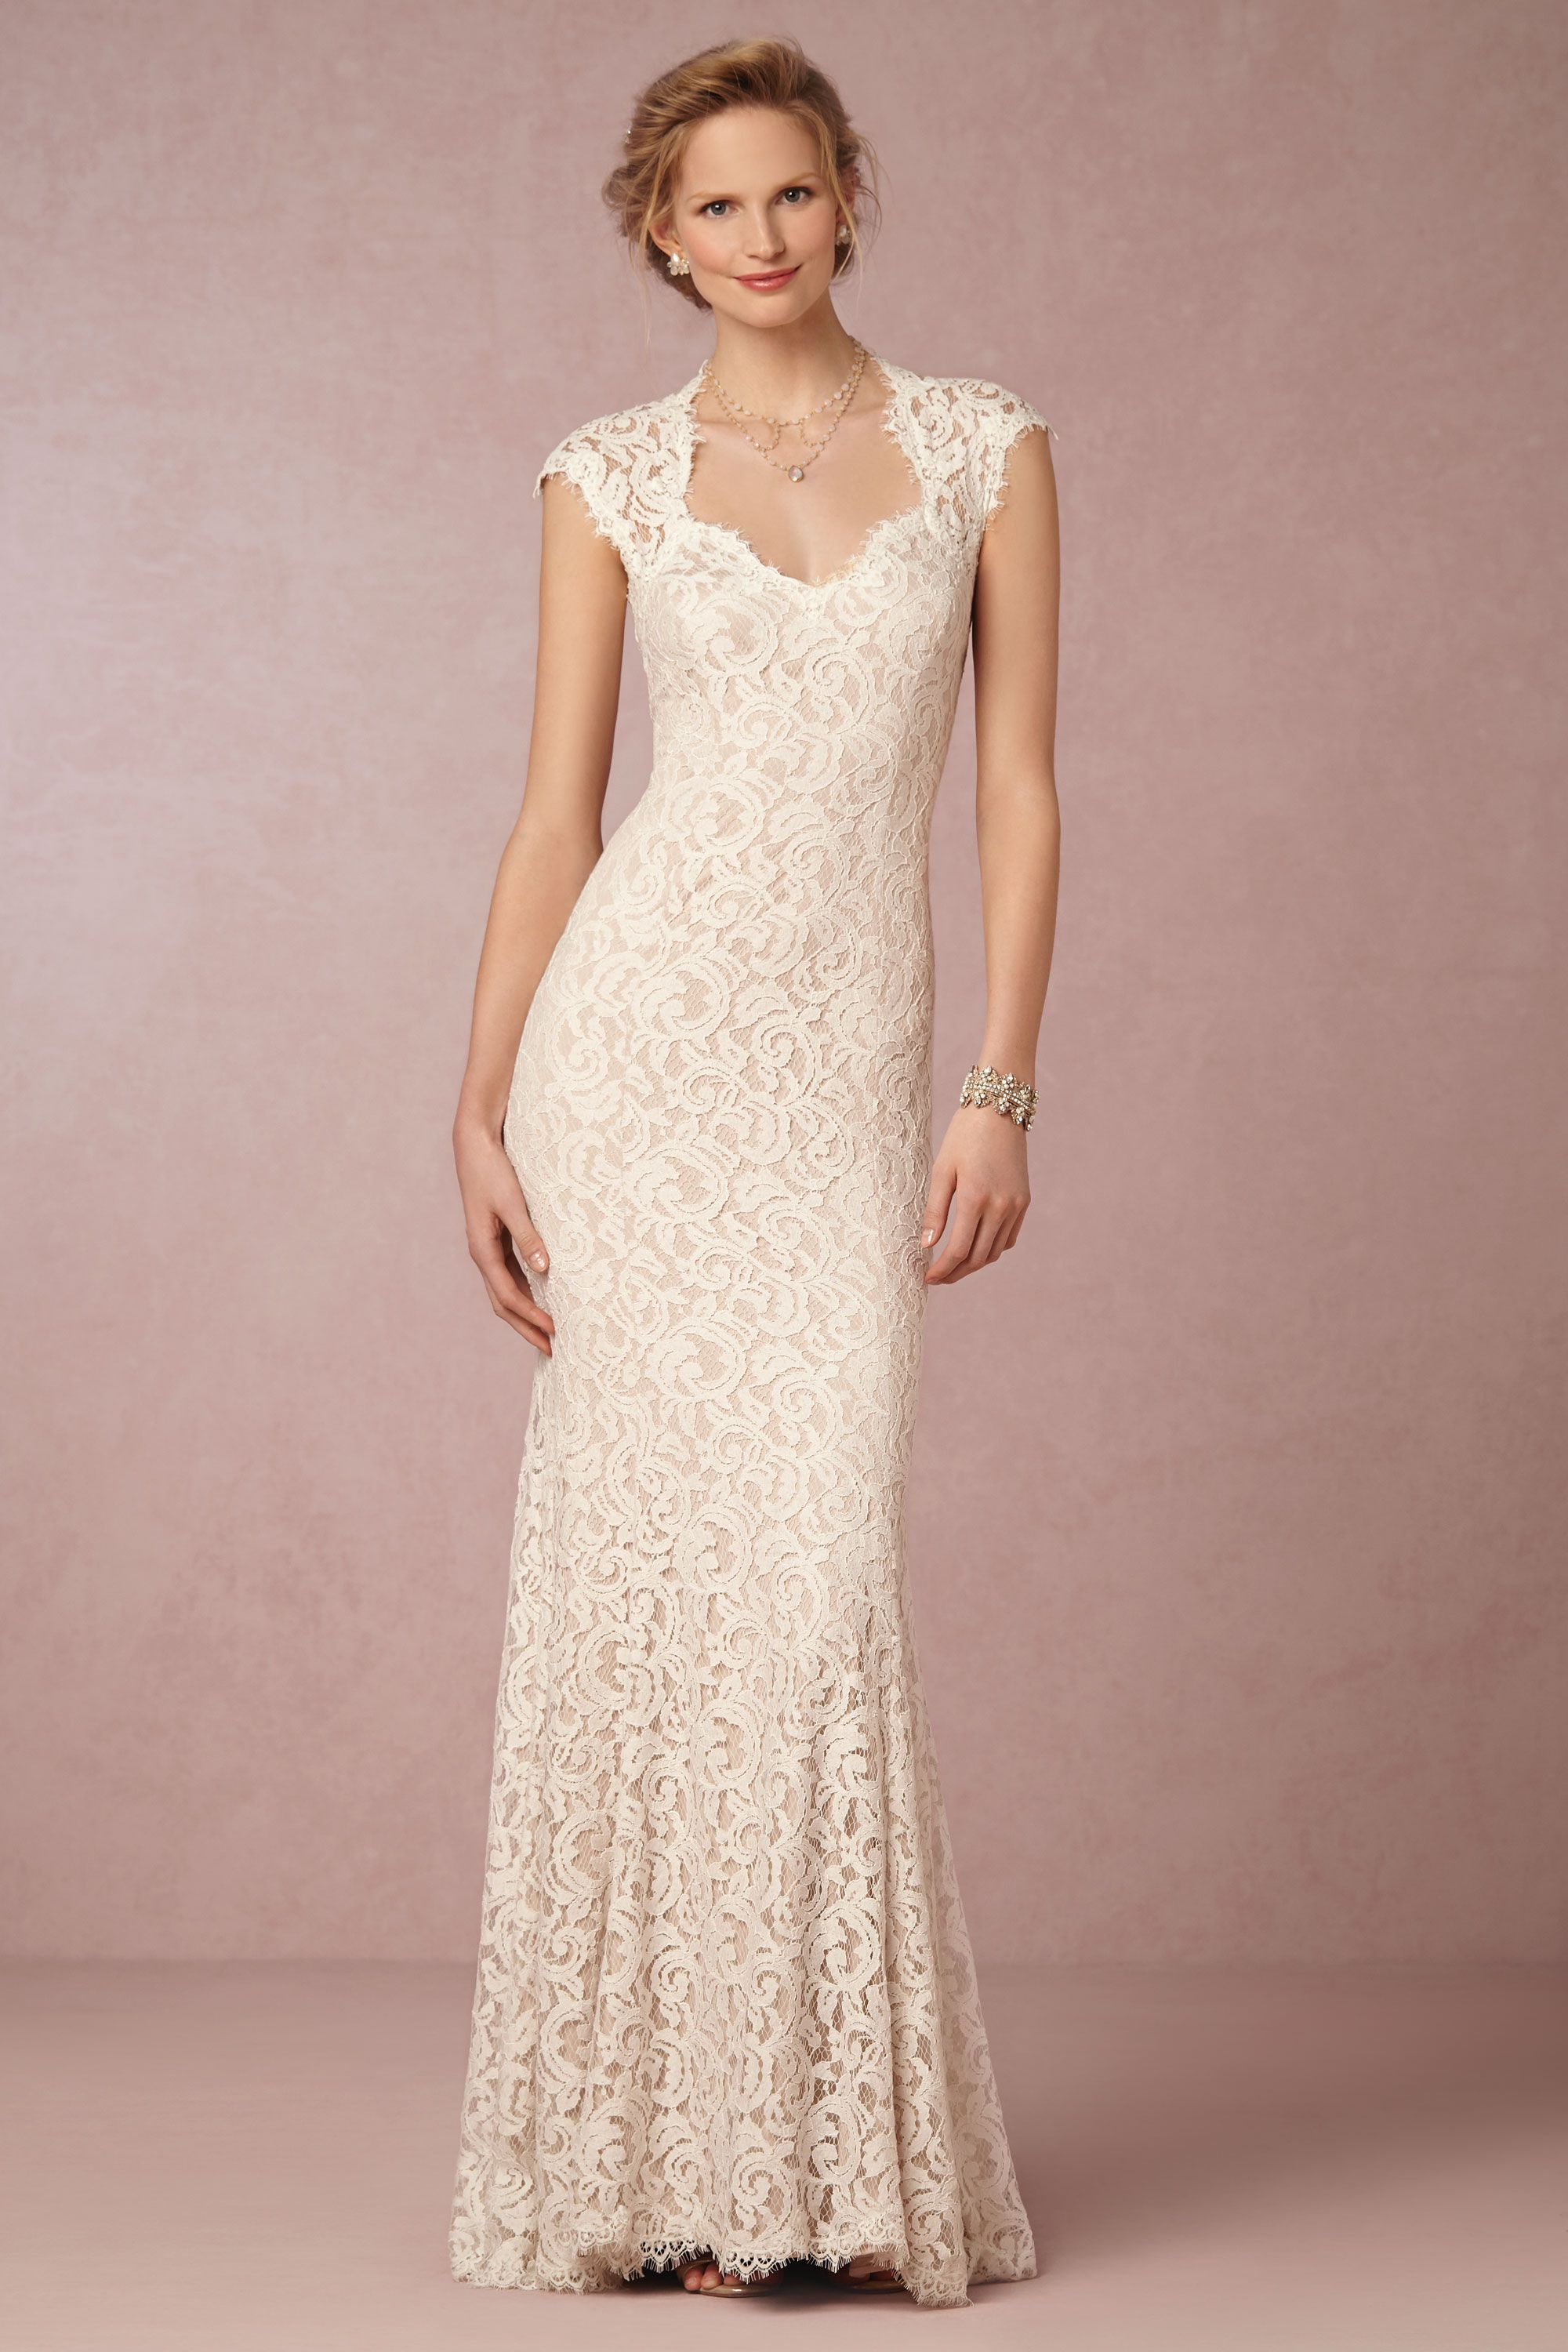 marivana lace gown ivory wedding dress Ivory natural Marivana Lace Gown BHLDN